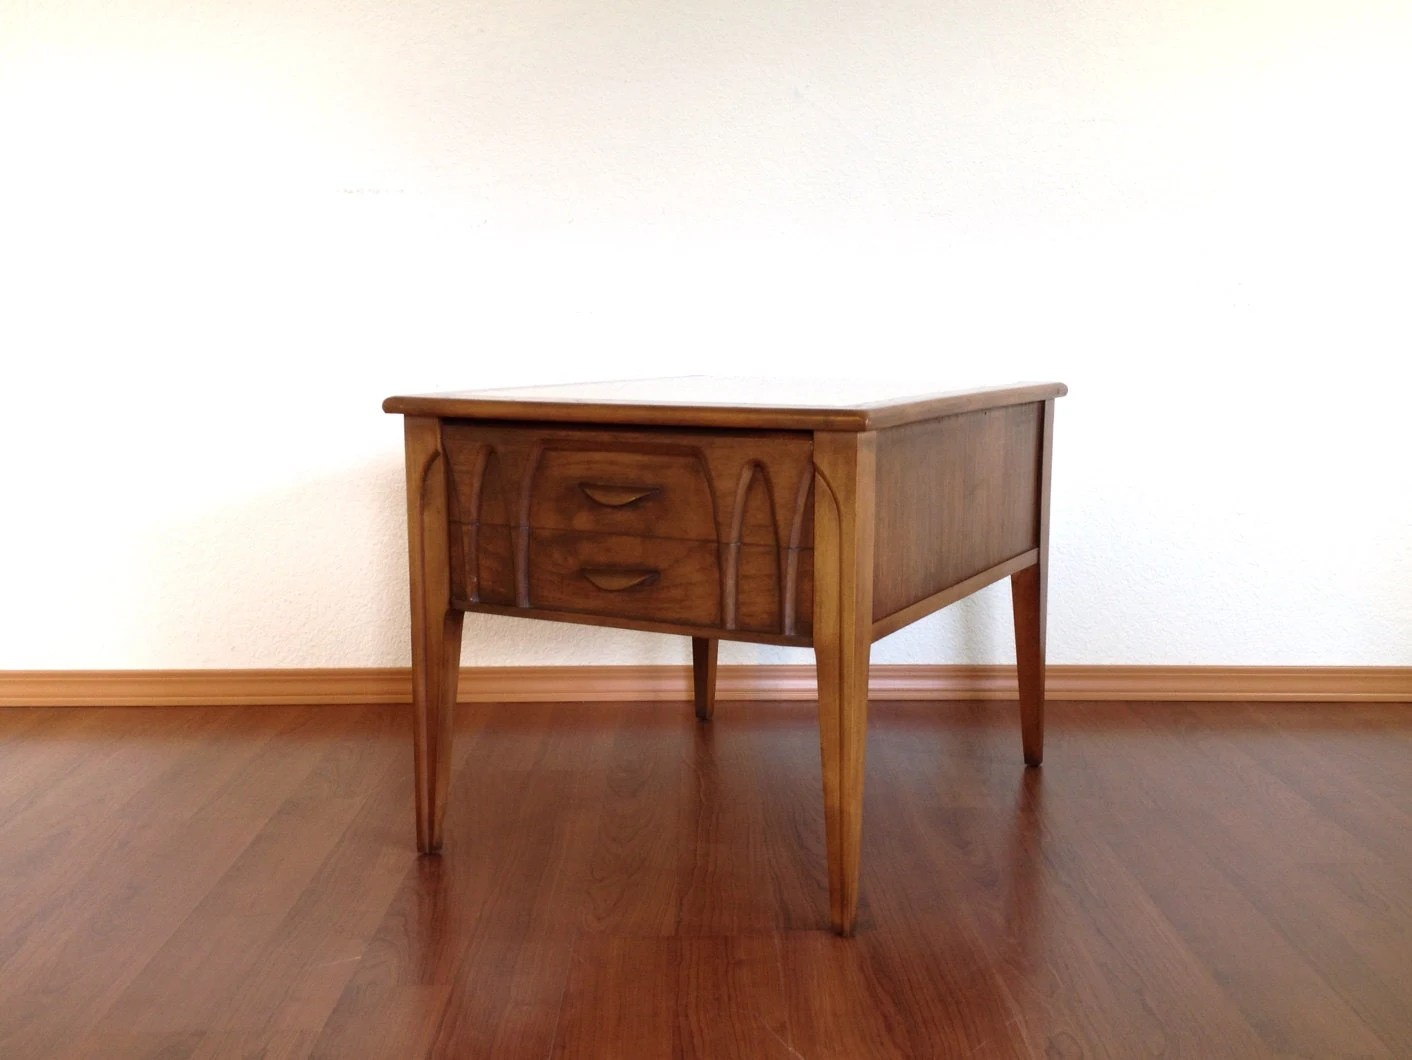 Vintage mid century modern marble top side table with for Retro modern furniture